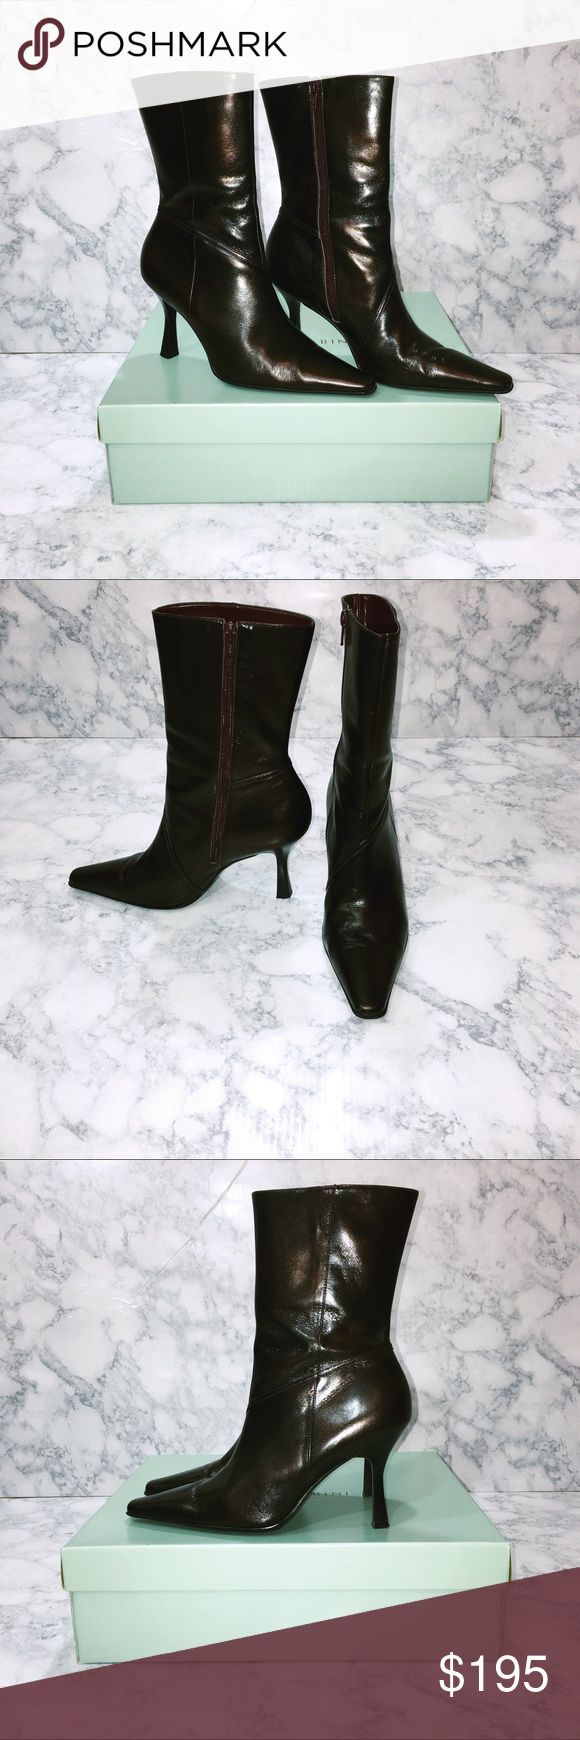 🌺🆕 Women's Cole Haan Nydia Tall Stretch Boots These Cole Haan Nydia Tall Stretch Boots in Dark Chocolate are beautiful, incredibly comfortable, and in EUC. These were my Mom's, although she hardly wore them. Made in Italy. Cole Haan Shoes Heeled Boots